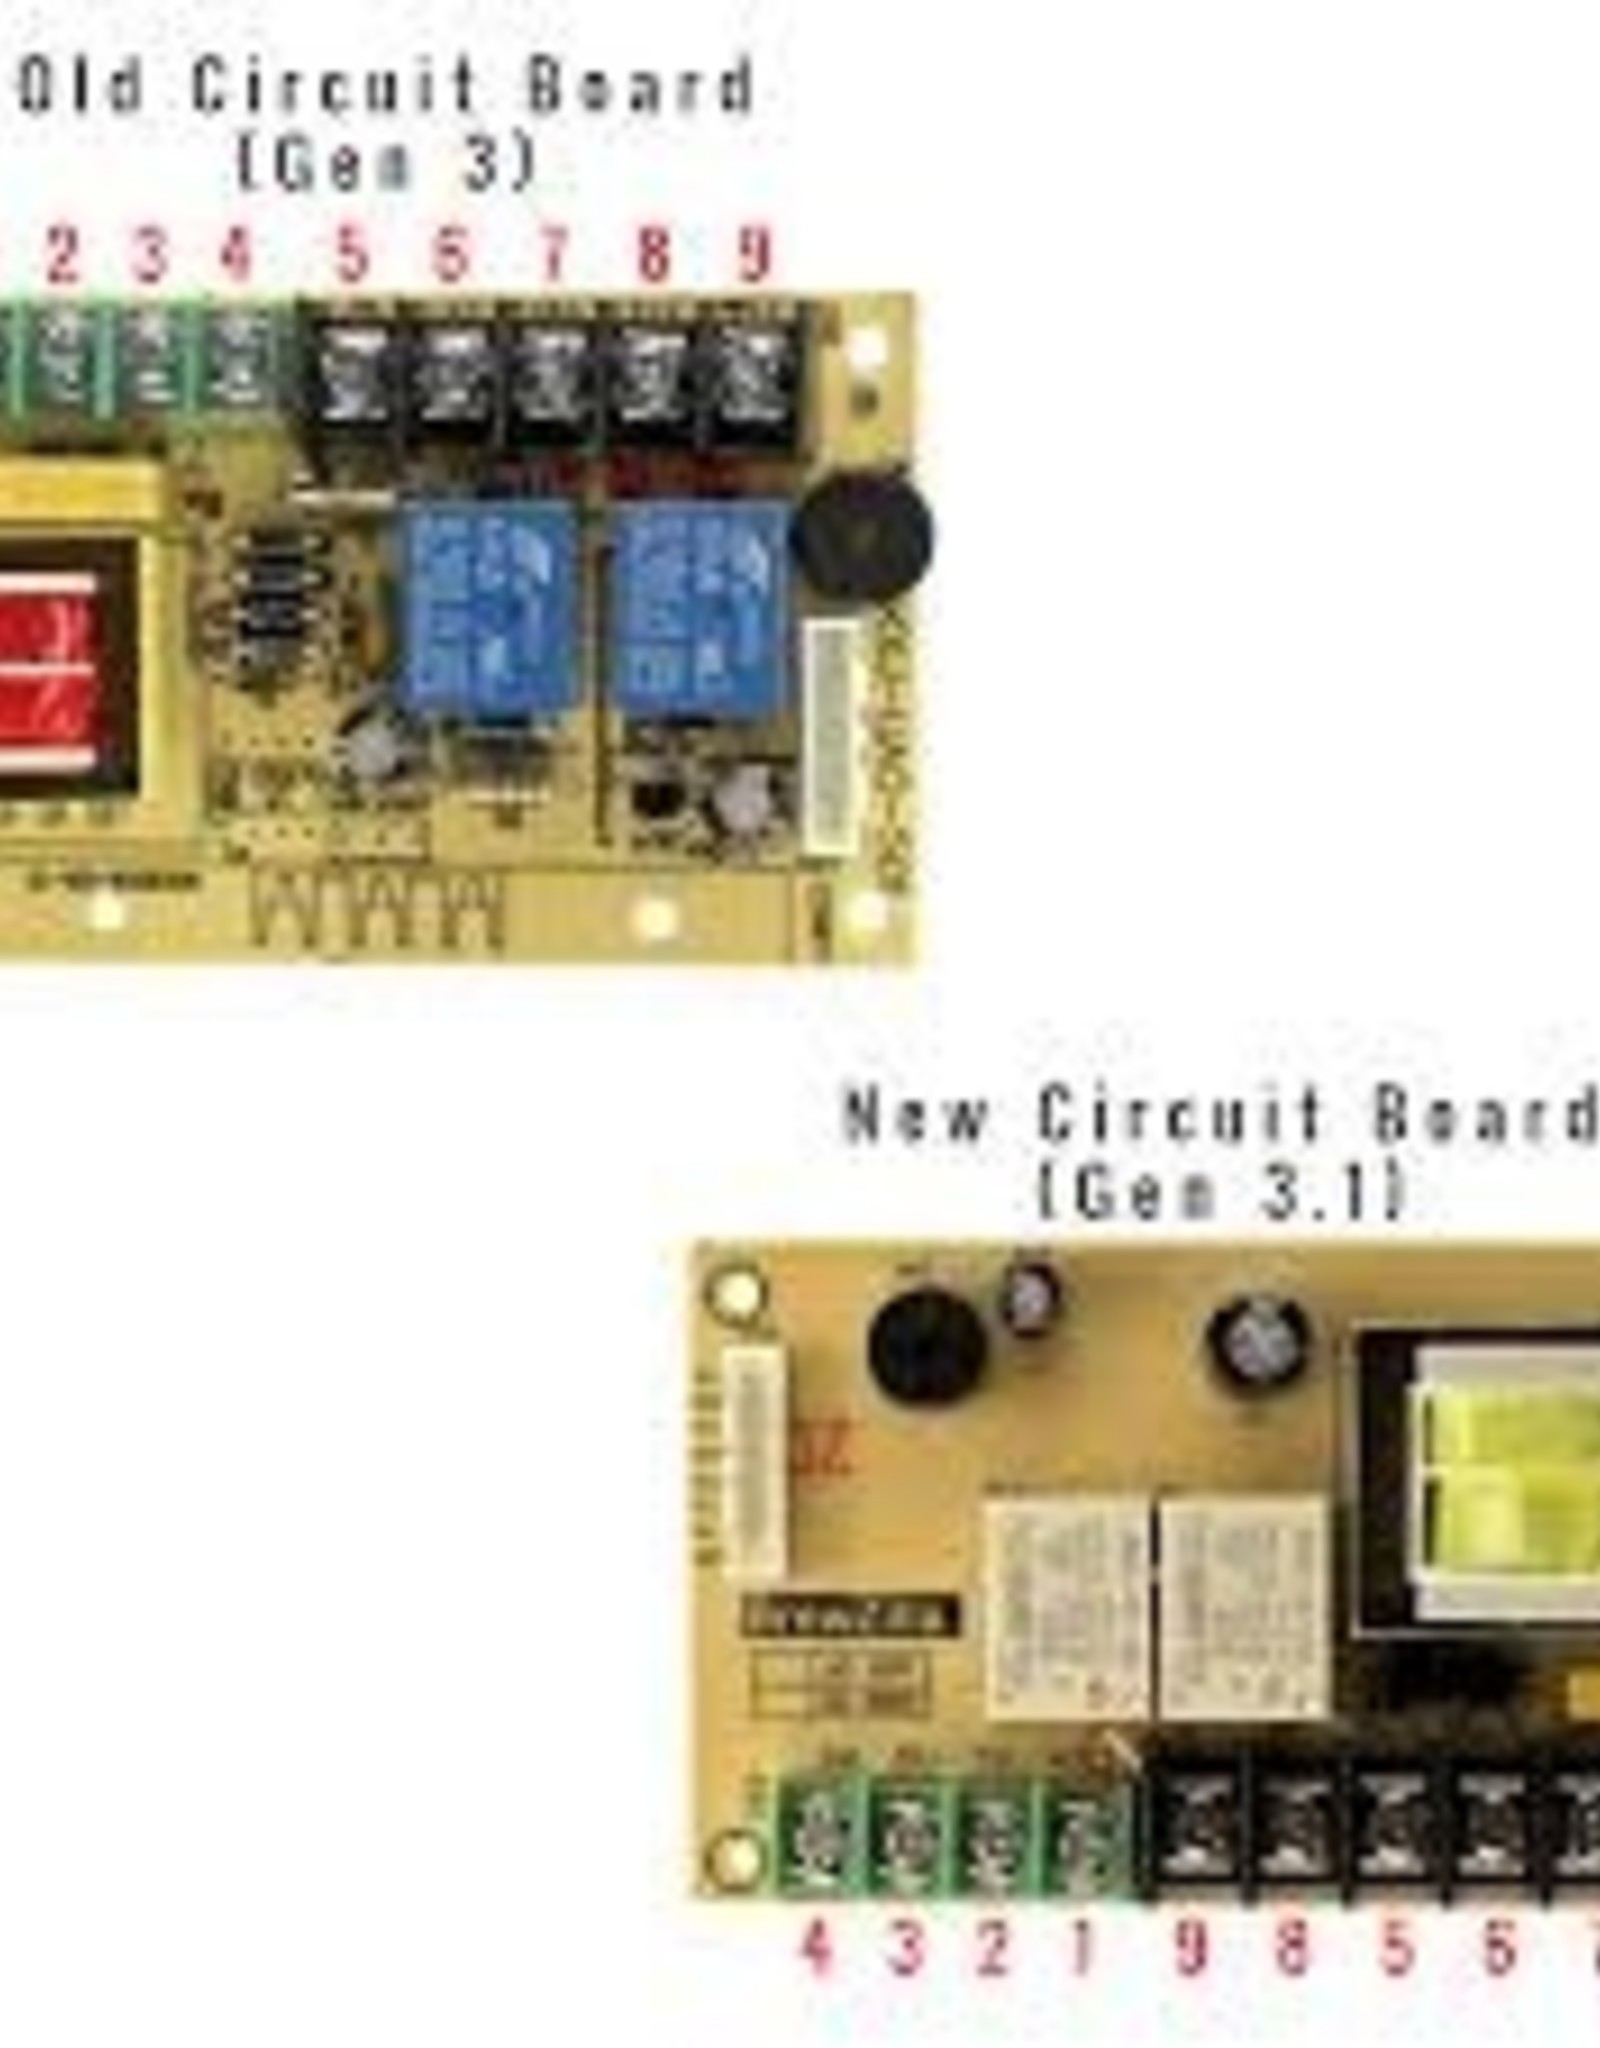 KEG LAND Replacement Main Circuit Board for 110v Robobrew/Brewzilla- Gen 3.1